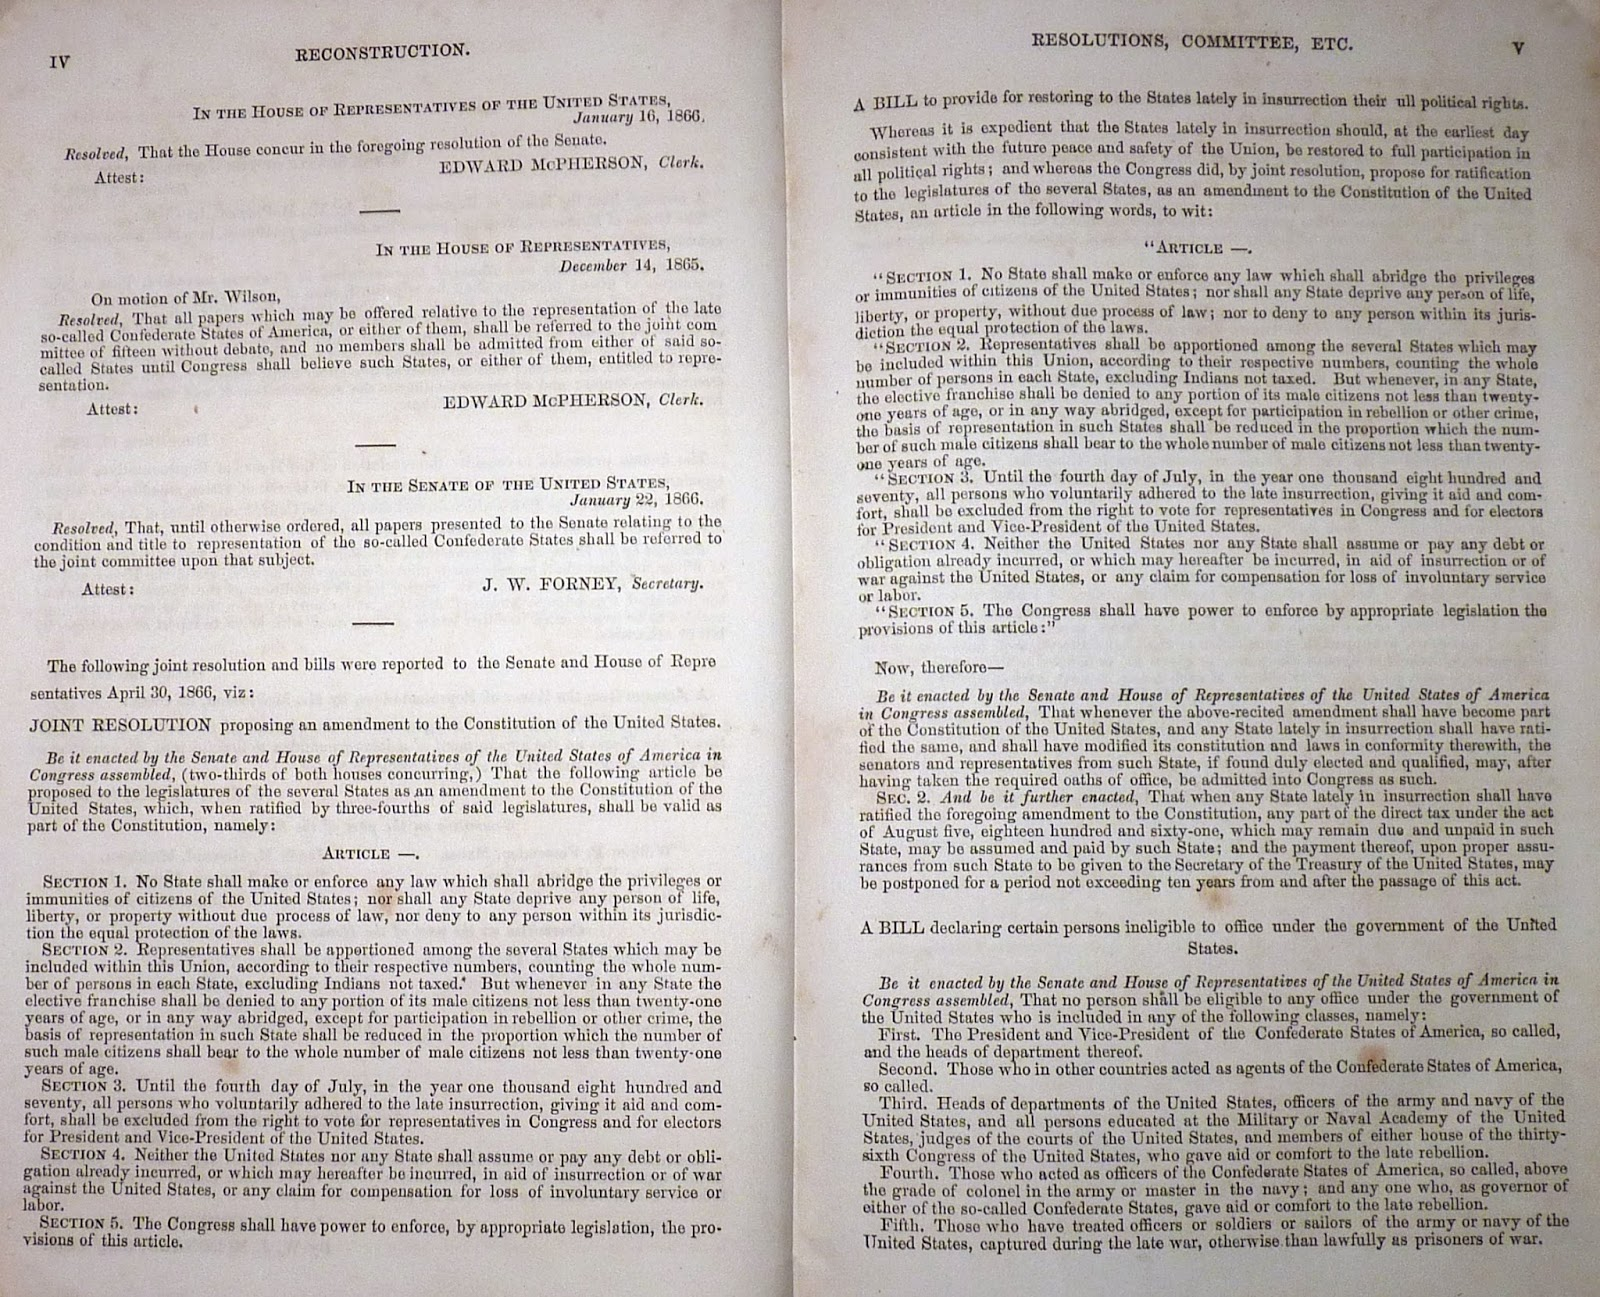 an analysis of the fourth and fourteenth amendment to the united states constitution The court did not rely on the twenty-fourth amendment, instead applying a fourteenth amendment equal protection clause analysis using a framework it had established in cases such as anderson v celebrezze (1983), rejecting ohio's early filing deadline for presidential candidates, and burdick v.